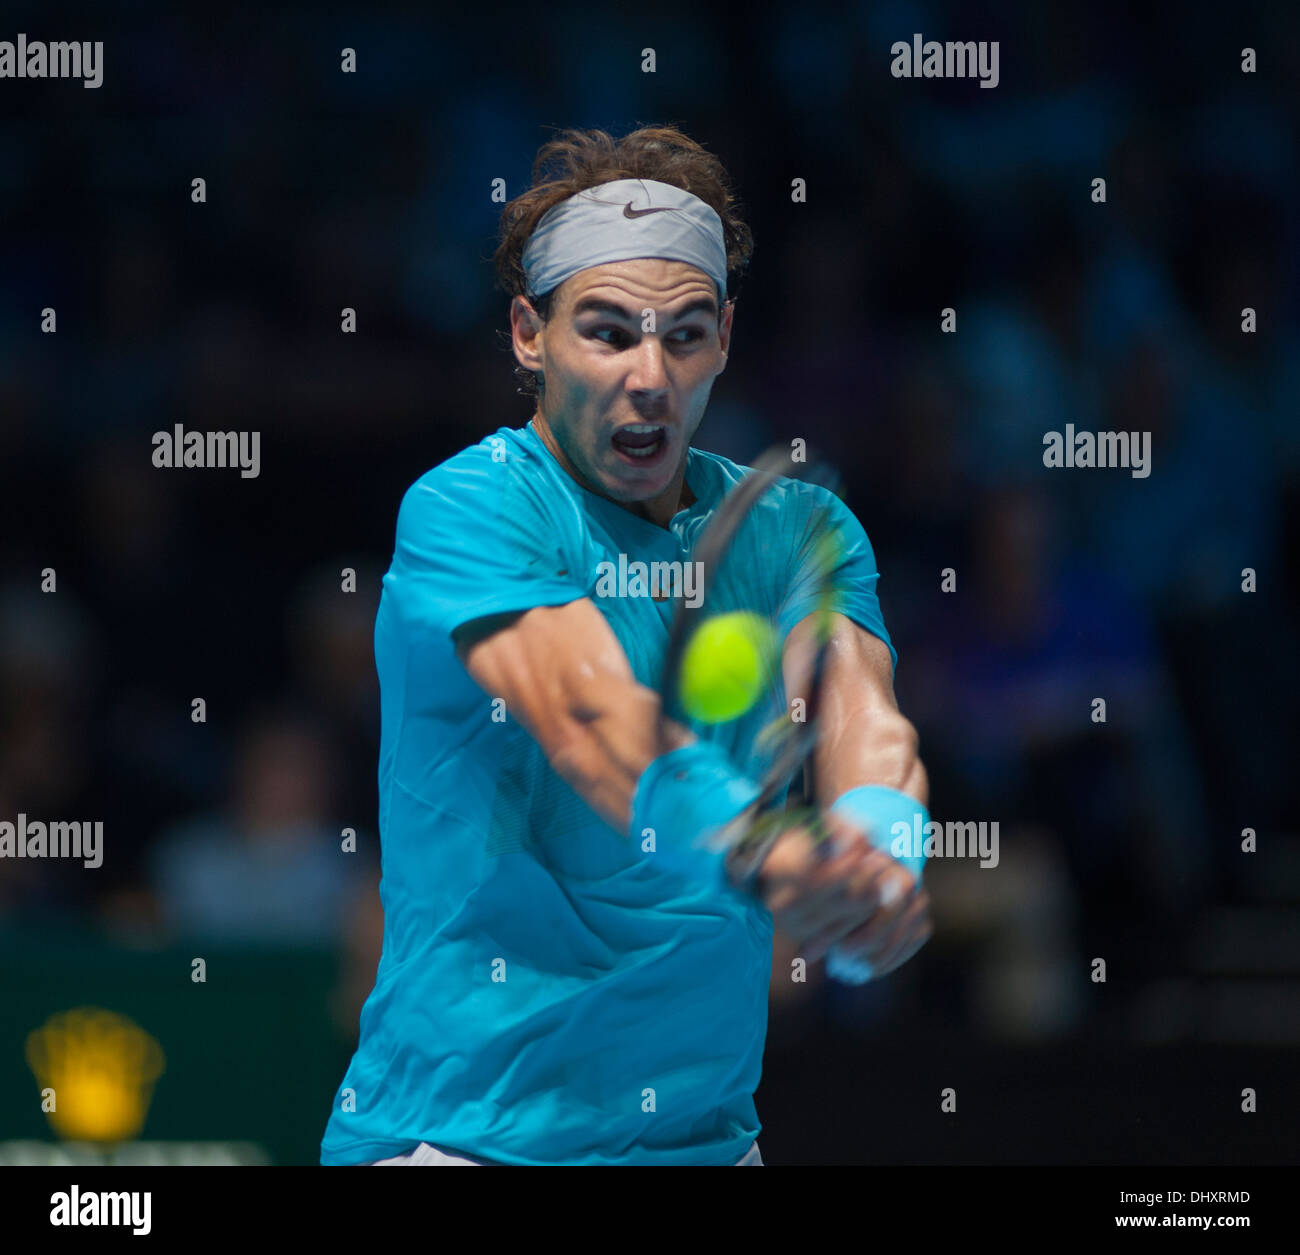 Rafael Nadal, World Number 1, playing at the Barclays ATP World Tour Finals, The O2 in London, Day 3 - Stock Image